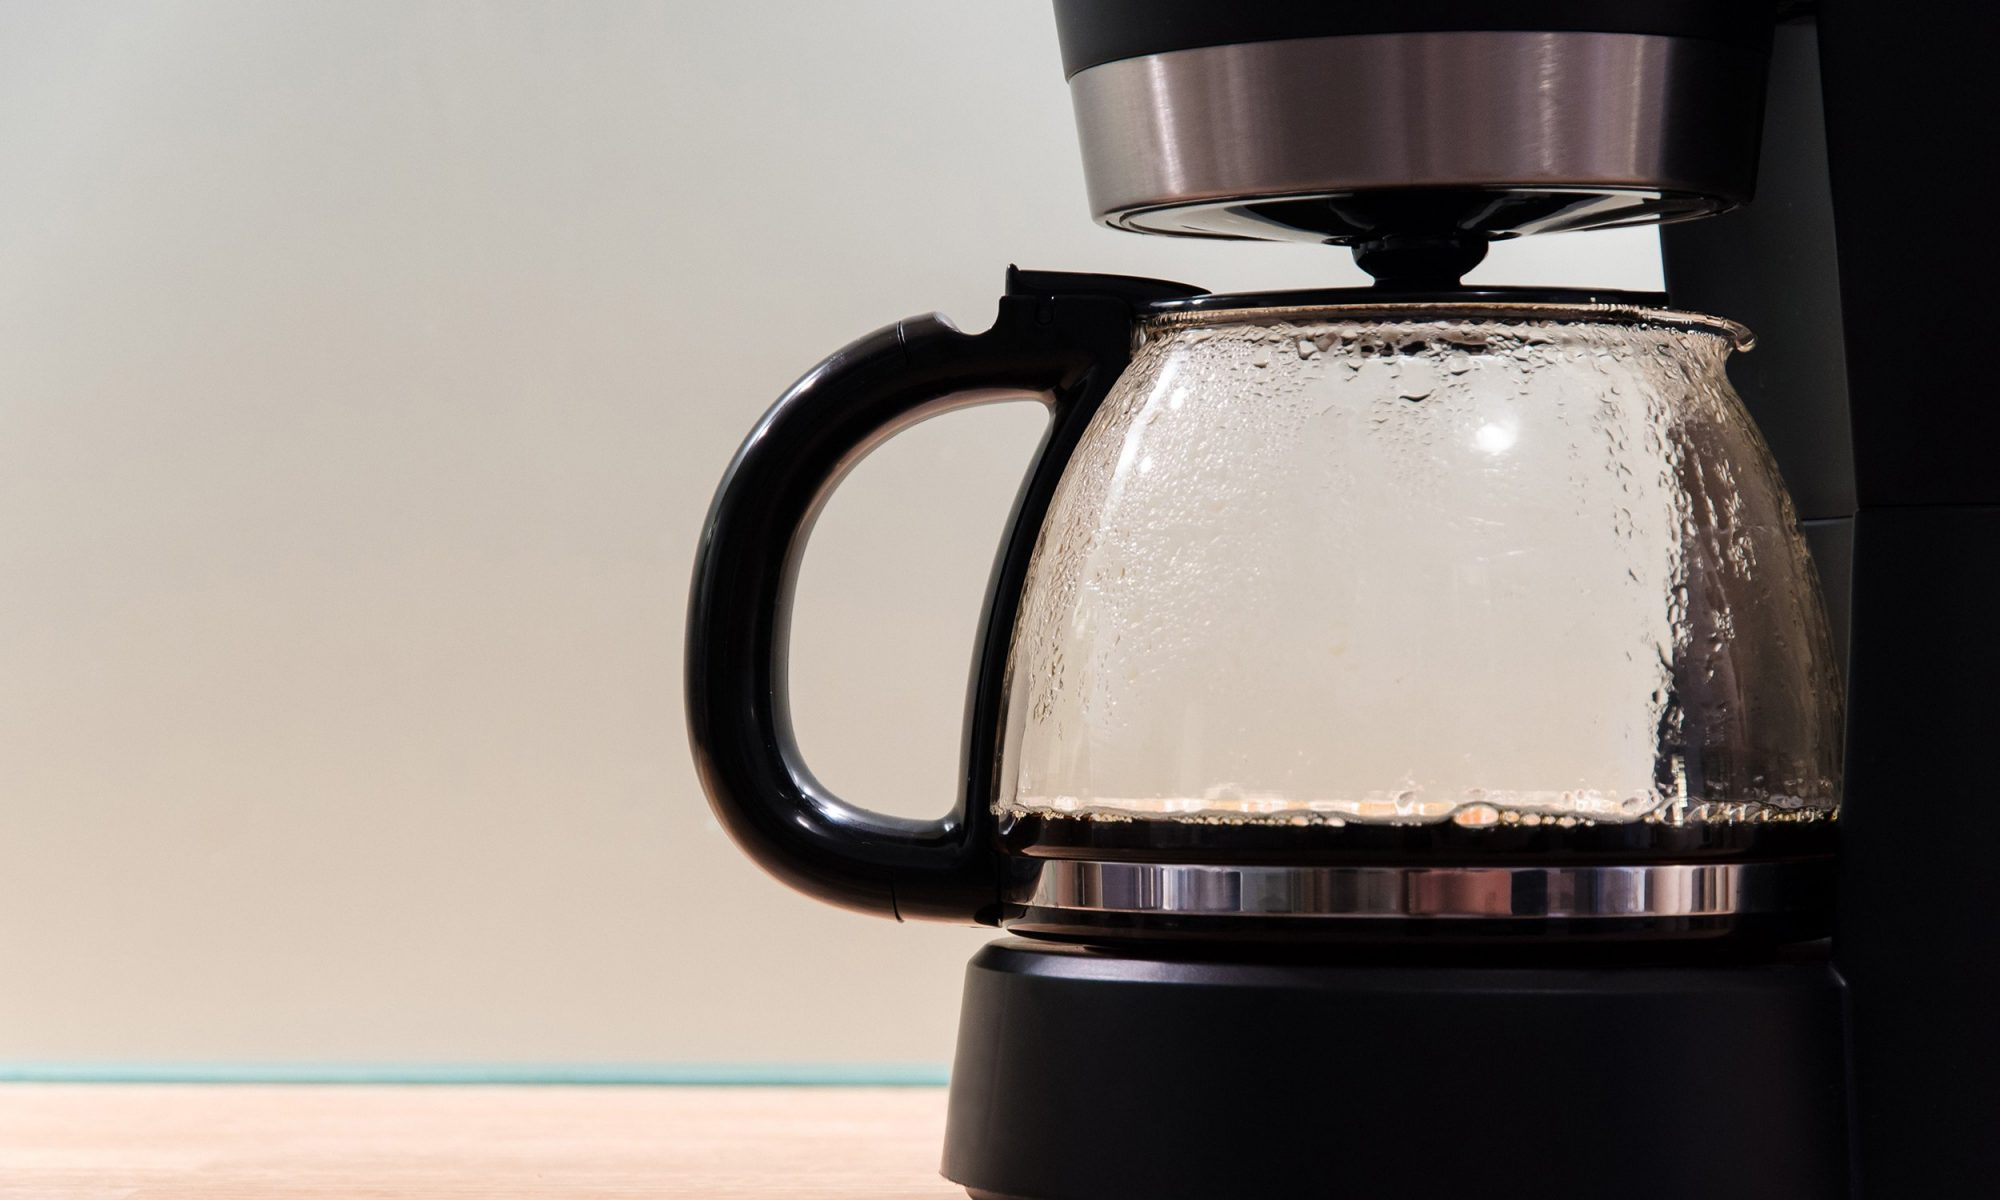 How to Clean a Drip Coffee Maker